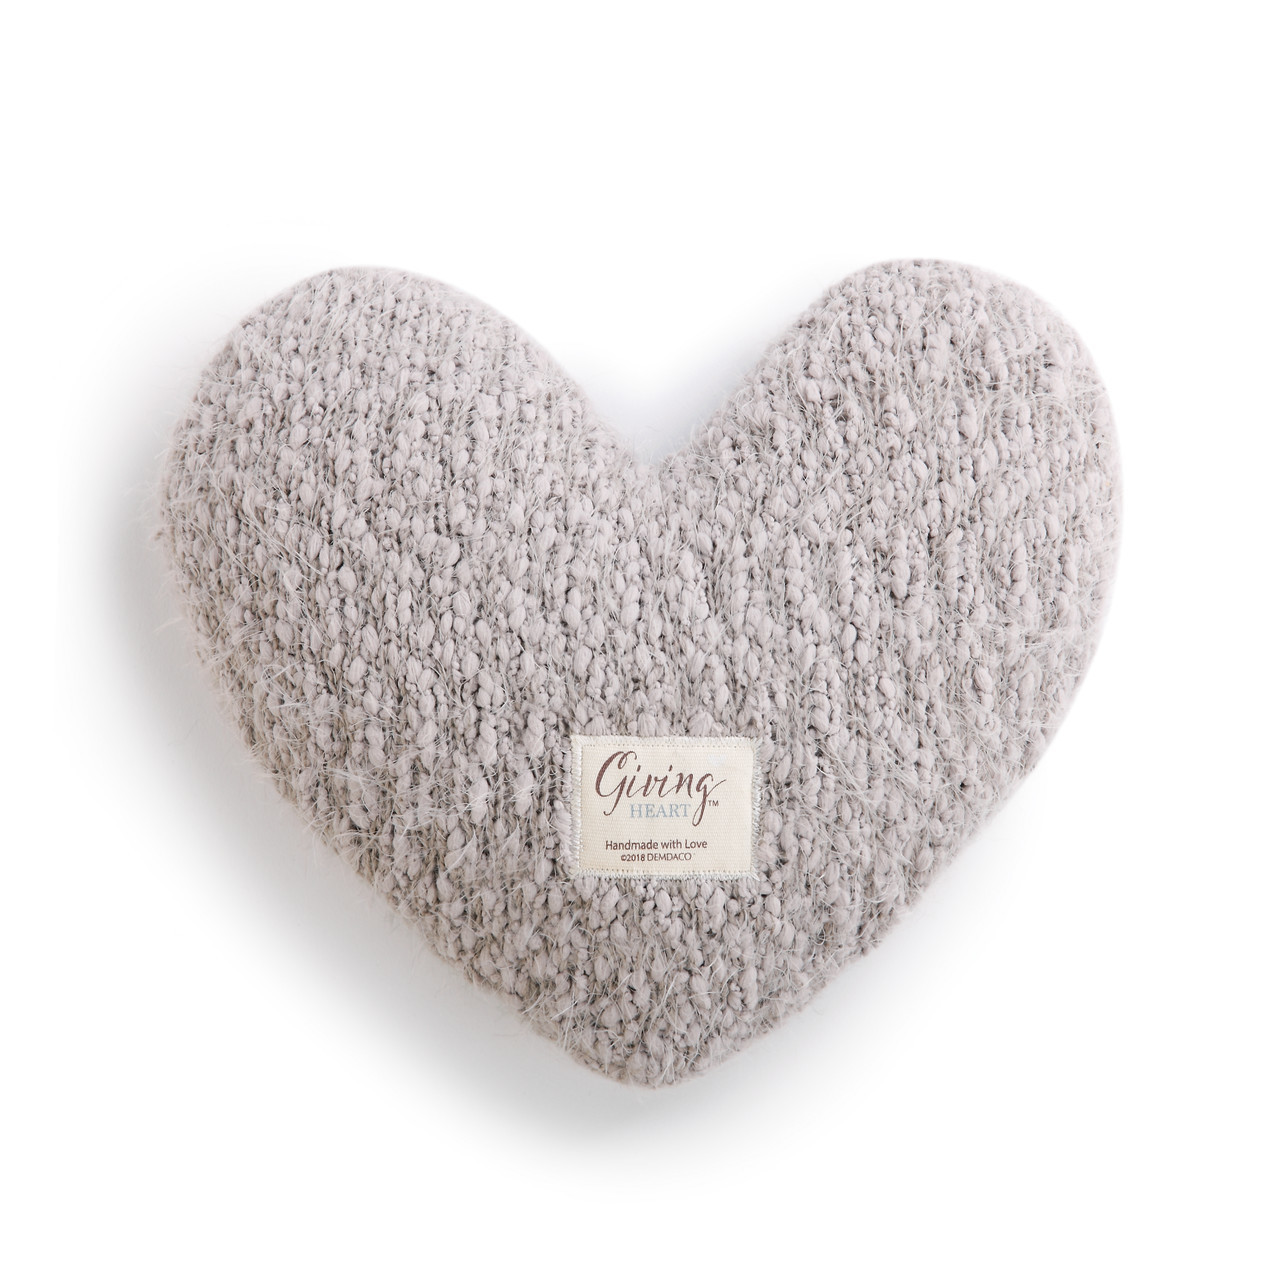 Taupe Giving Heart